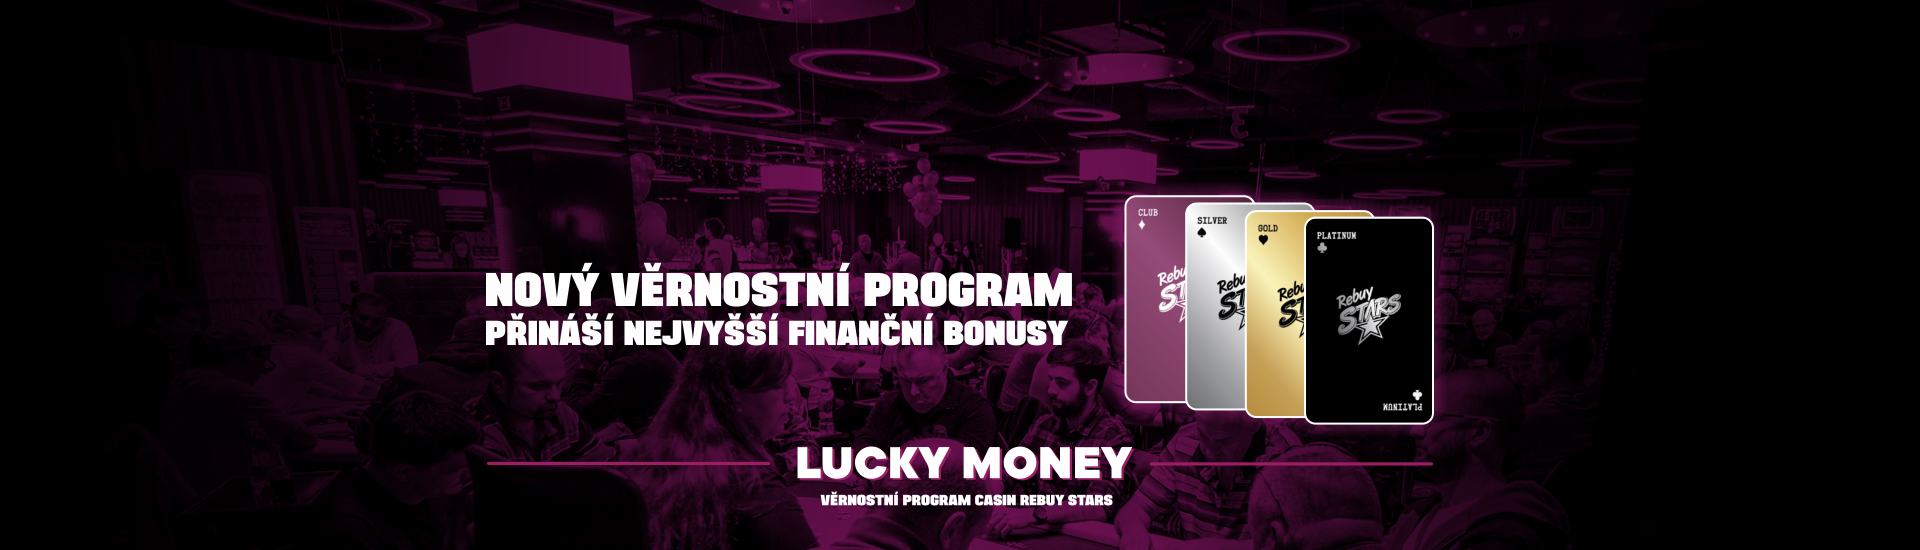 Rebuy Stars - loyalty program Lucky Money